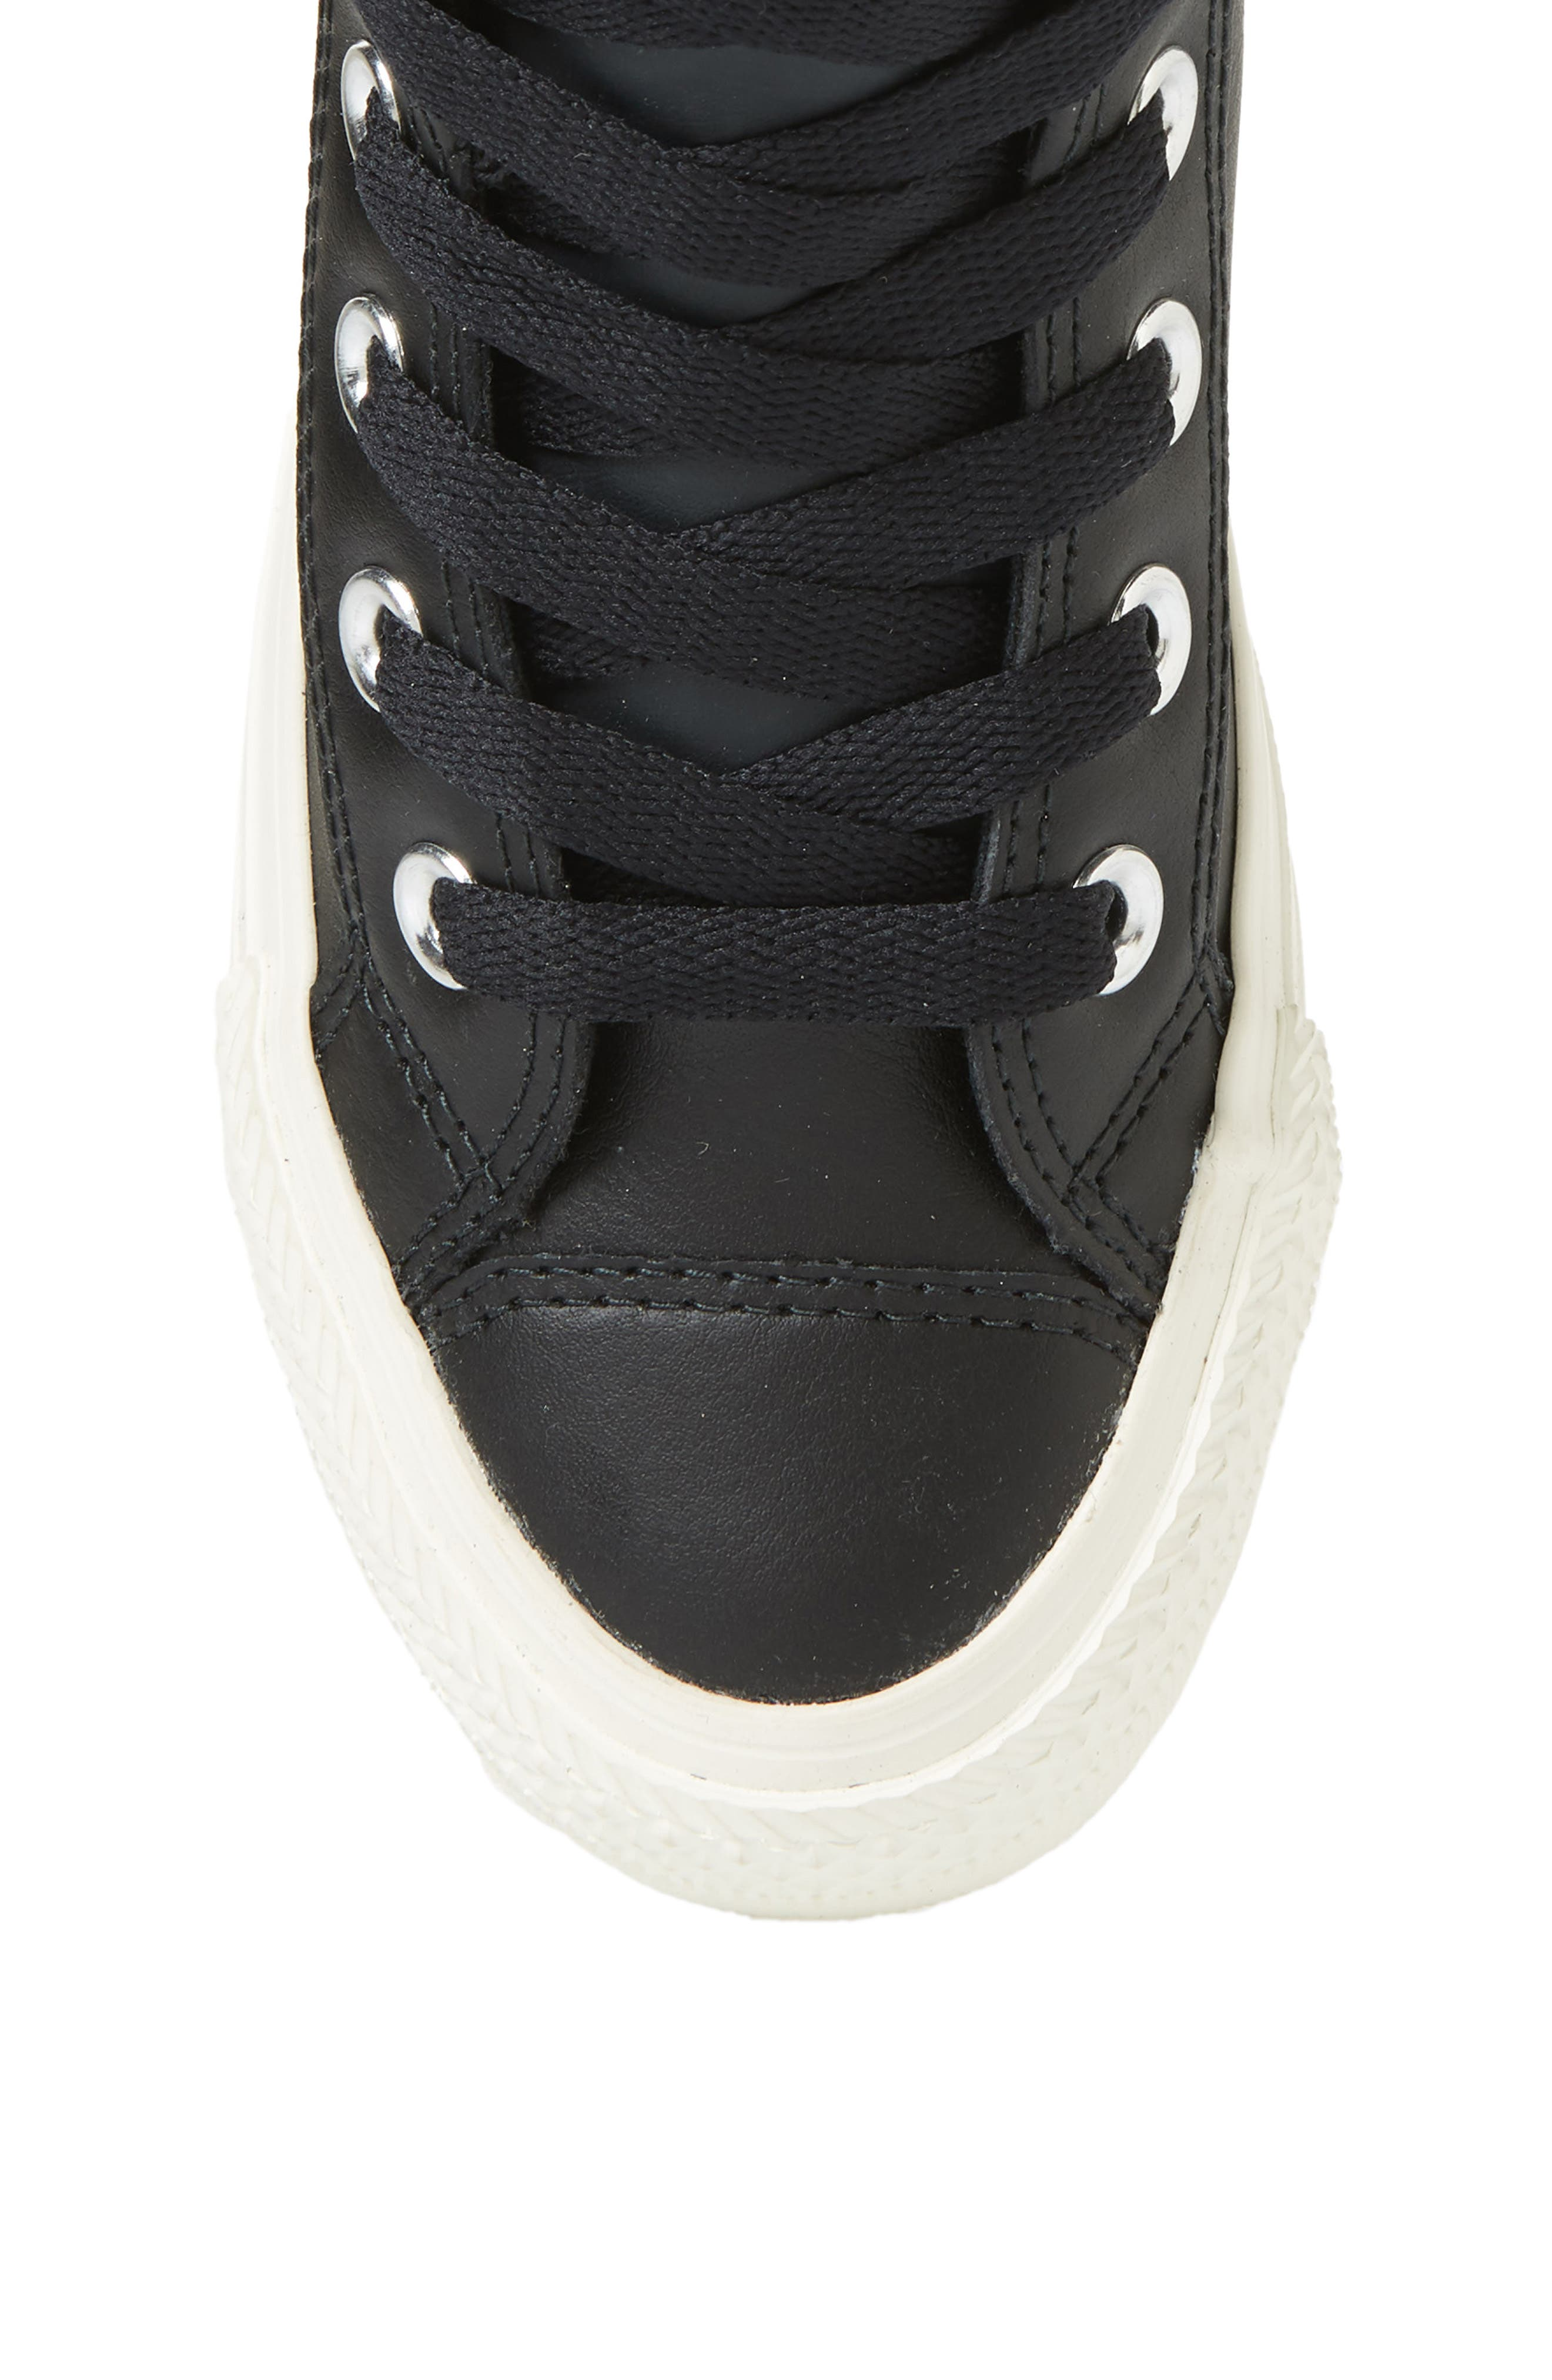 CONVERSE,                             Chuck Taylor<sup>®</sup> All Star<sup>®</sup> PC High Top Sneaker,                             Alternate thumbnail 5, color,                             BLACK